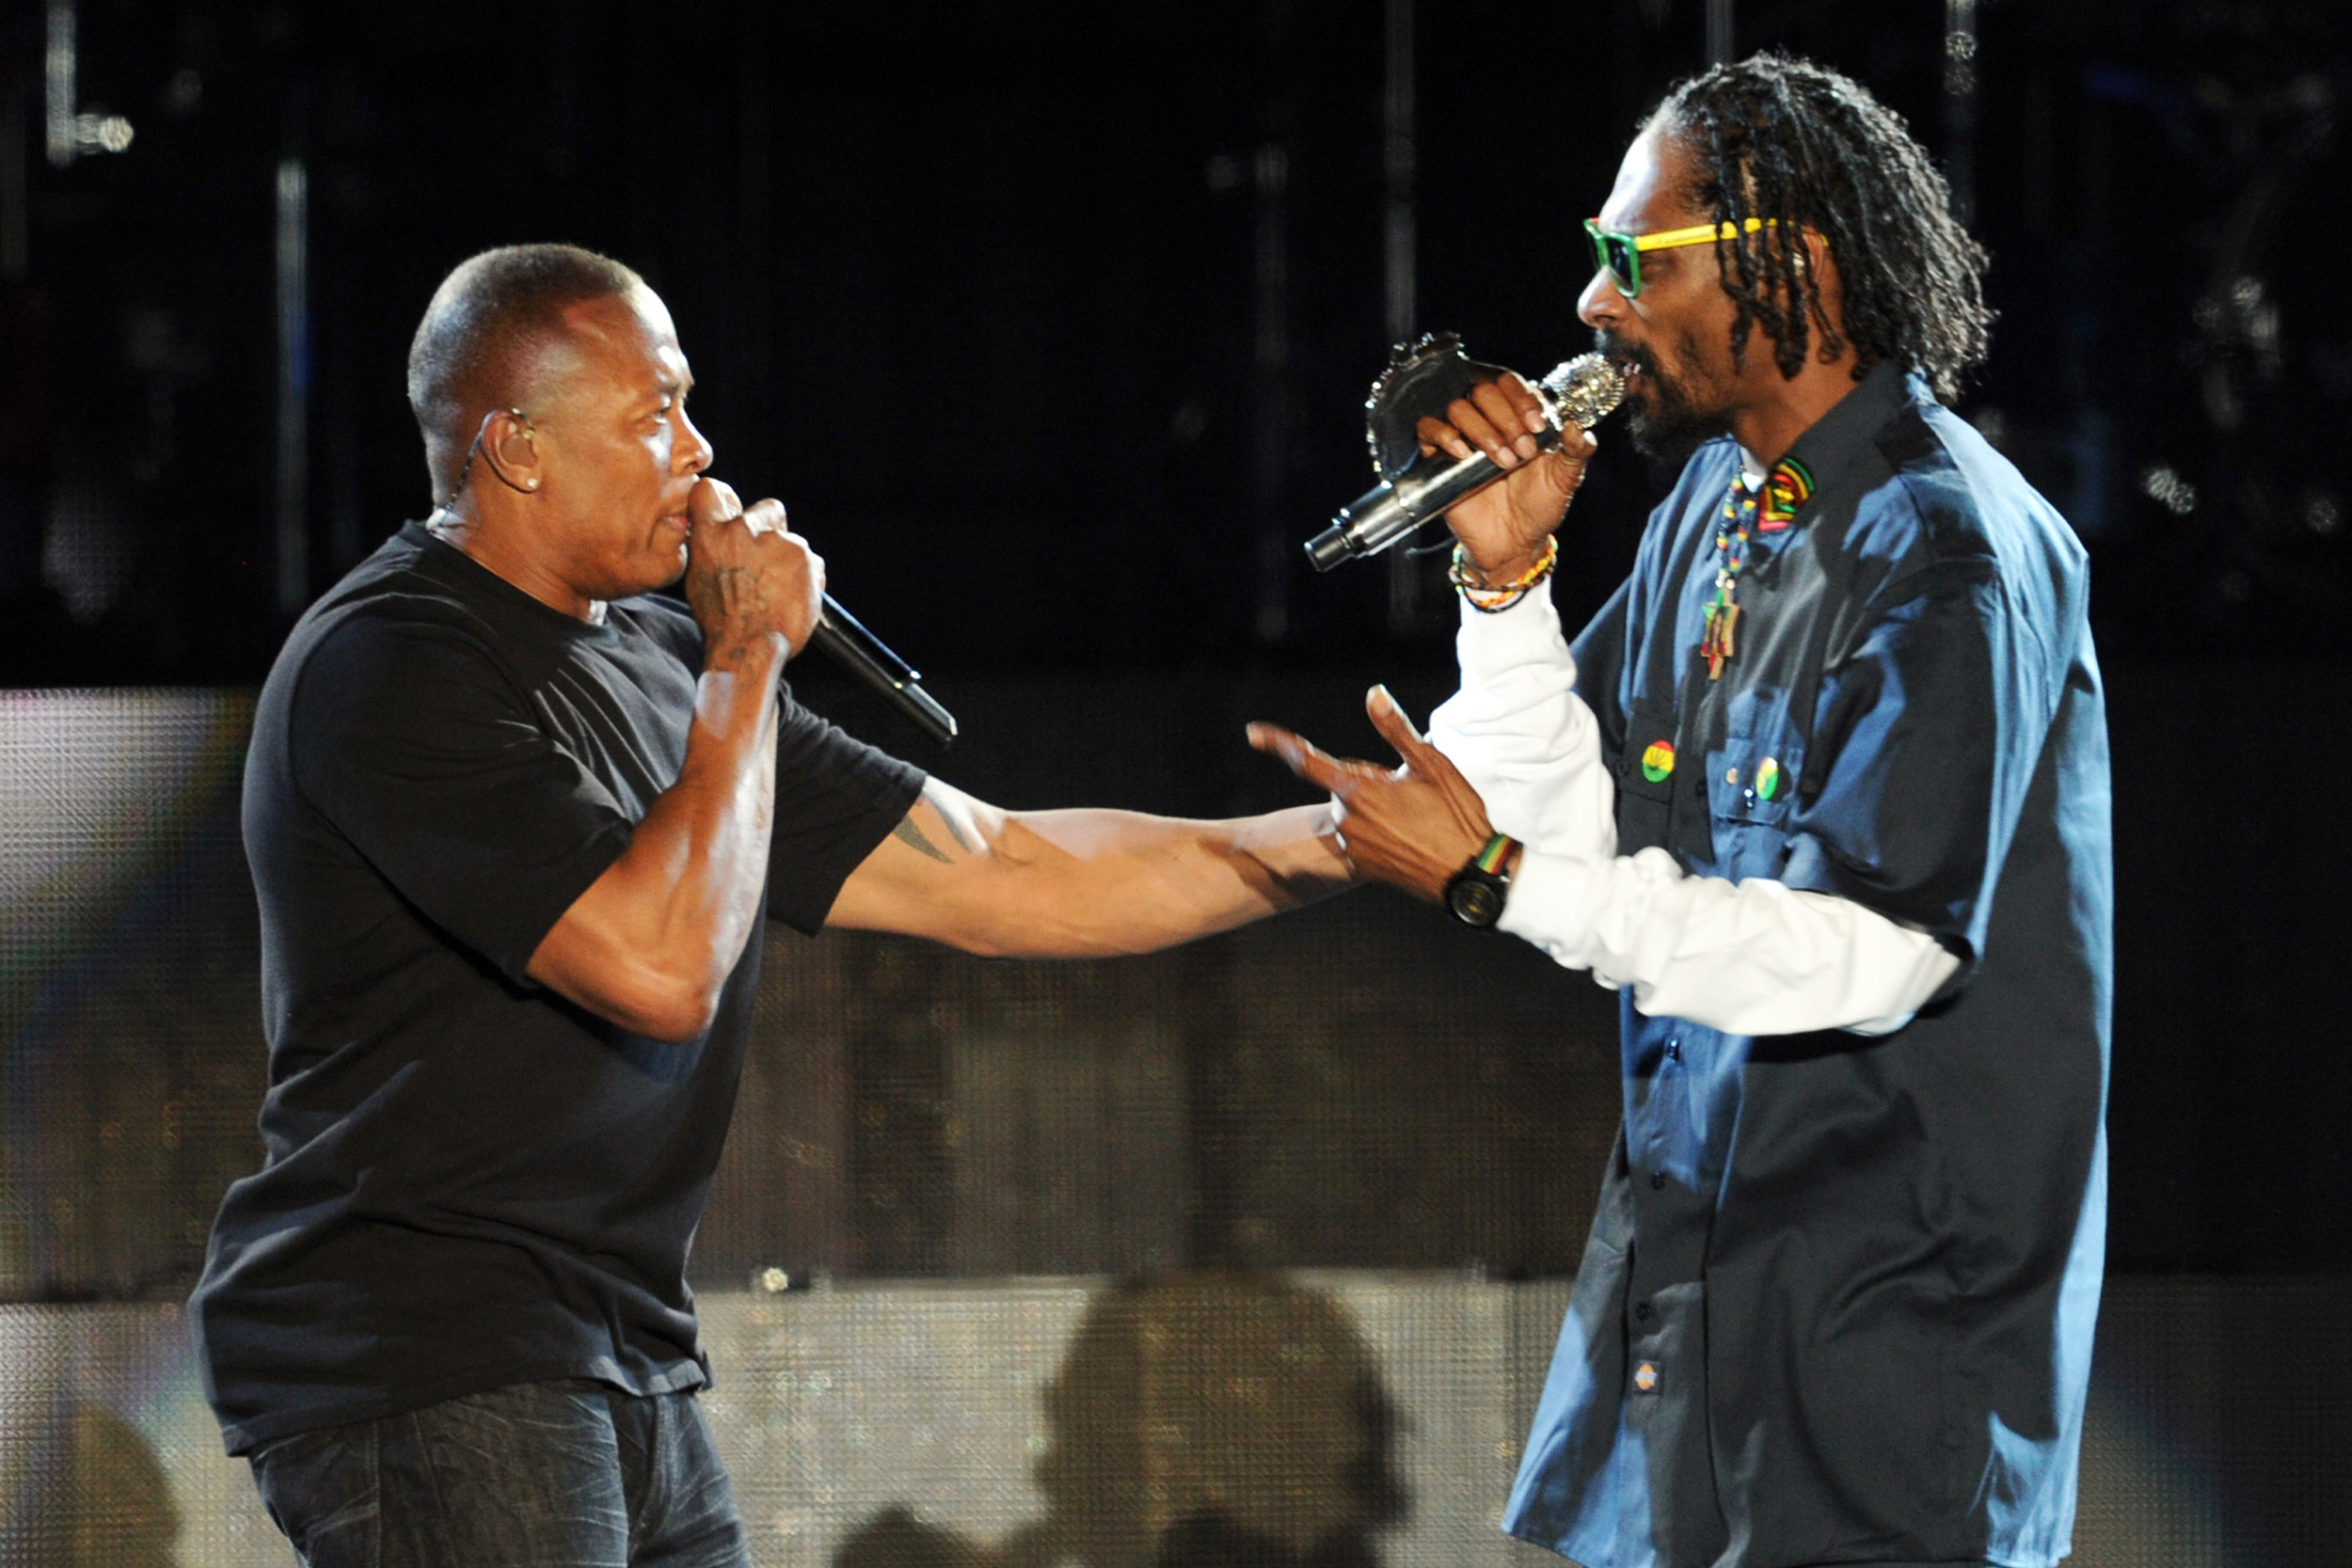 Dr. Dre, Snoop Dogg, Eminem, Mary J. Blige and Kendrick Lamar to play Super Bowl halftime show